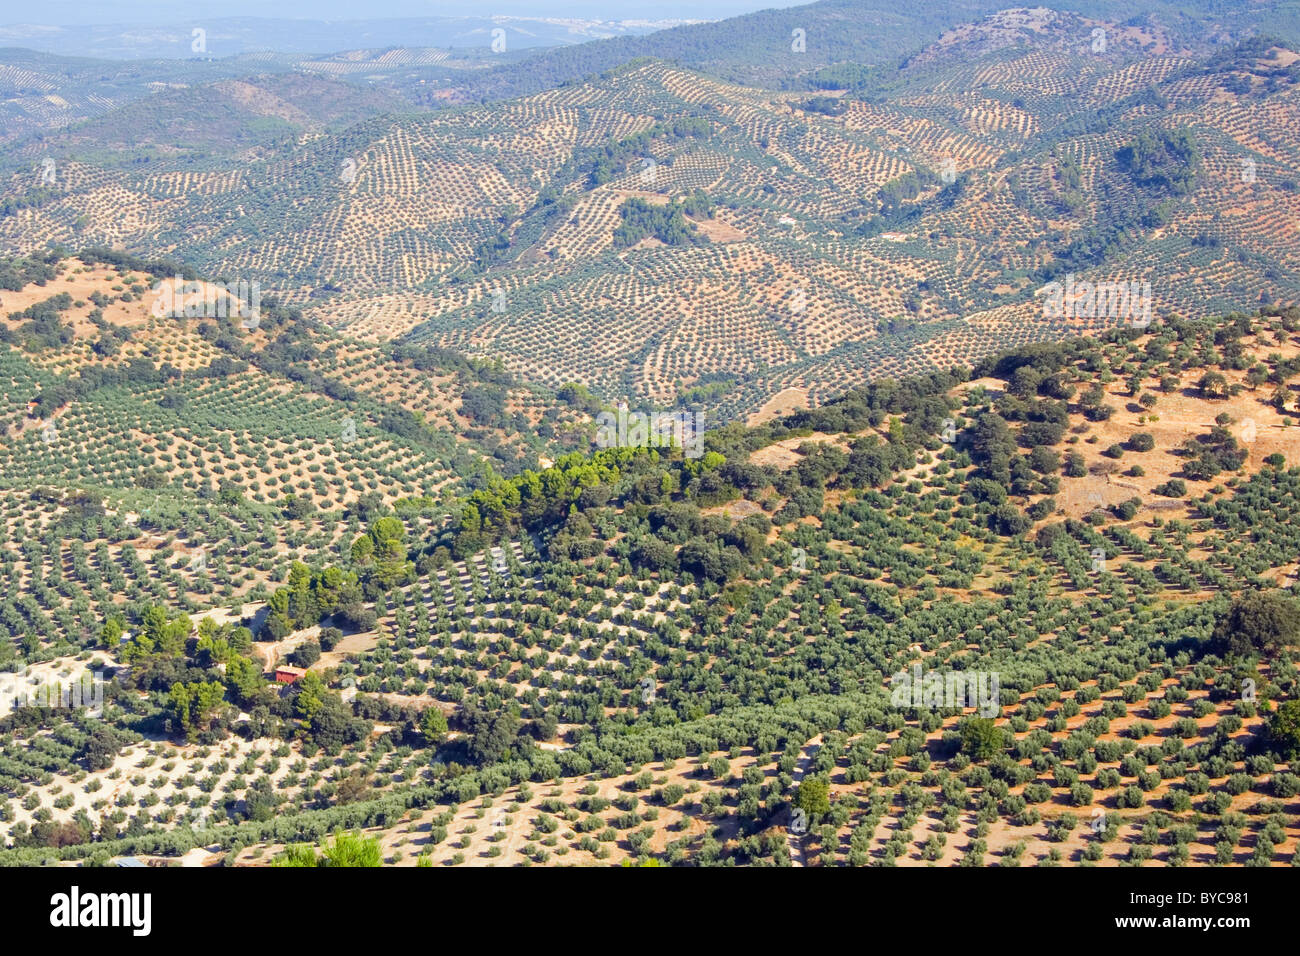 Olive groves in Jaen Province, Andalucia, Spain. - Stock Image